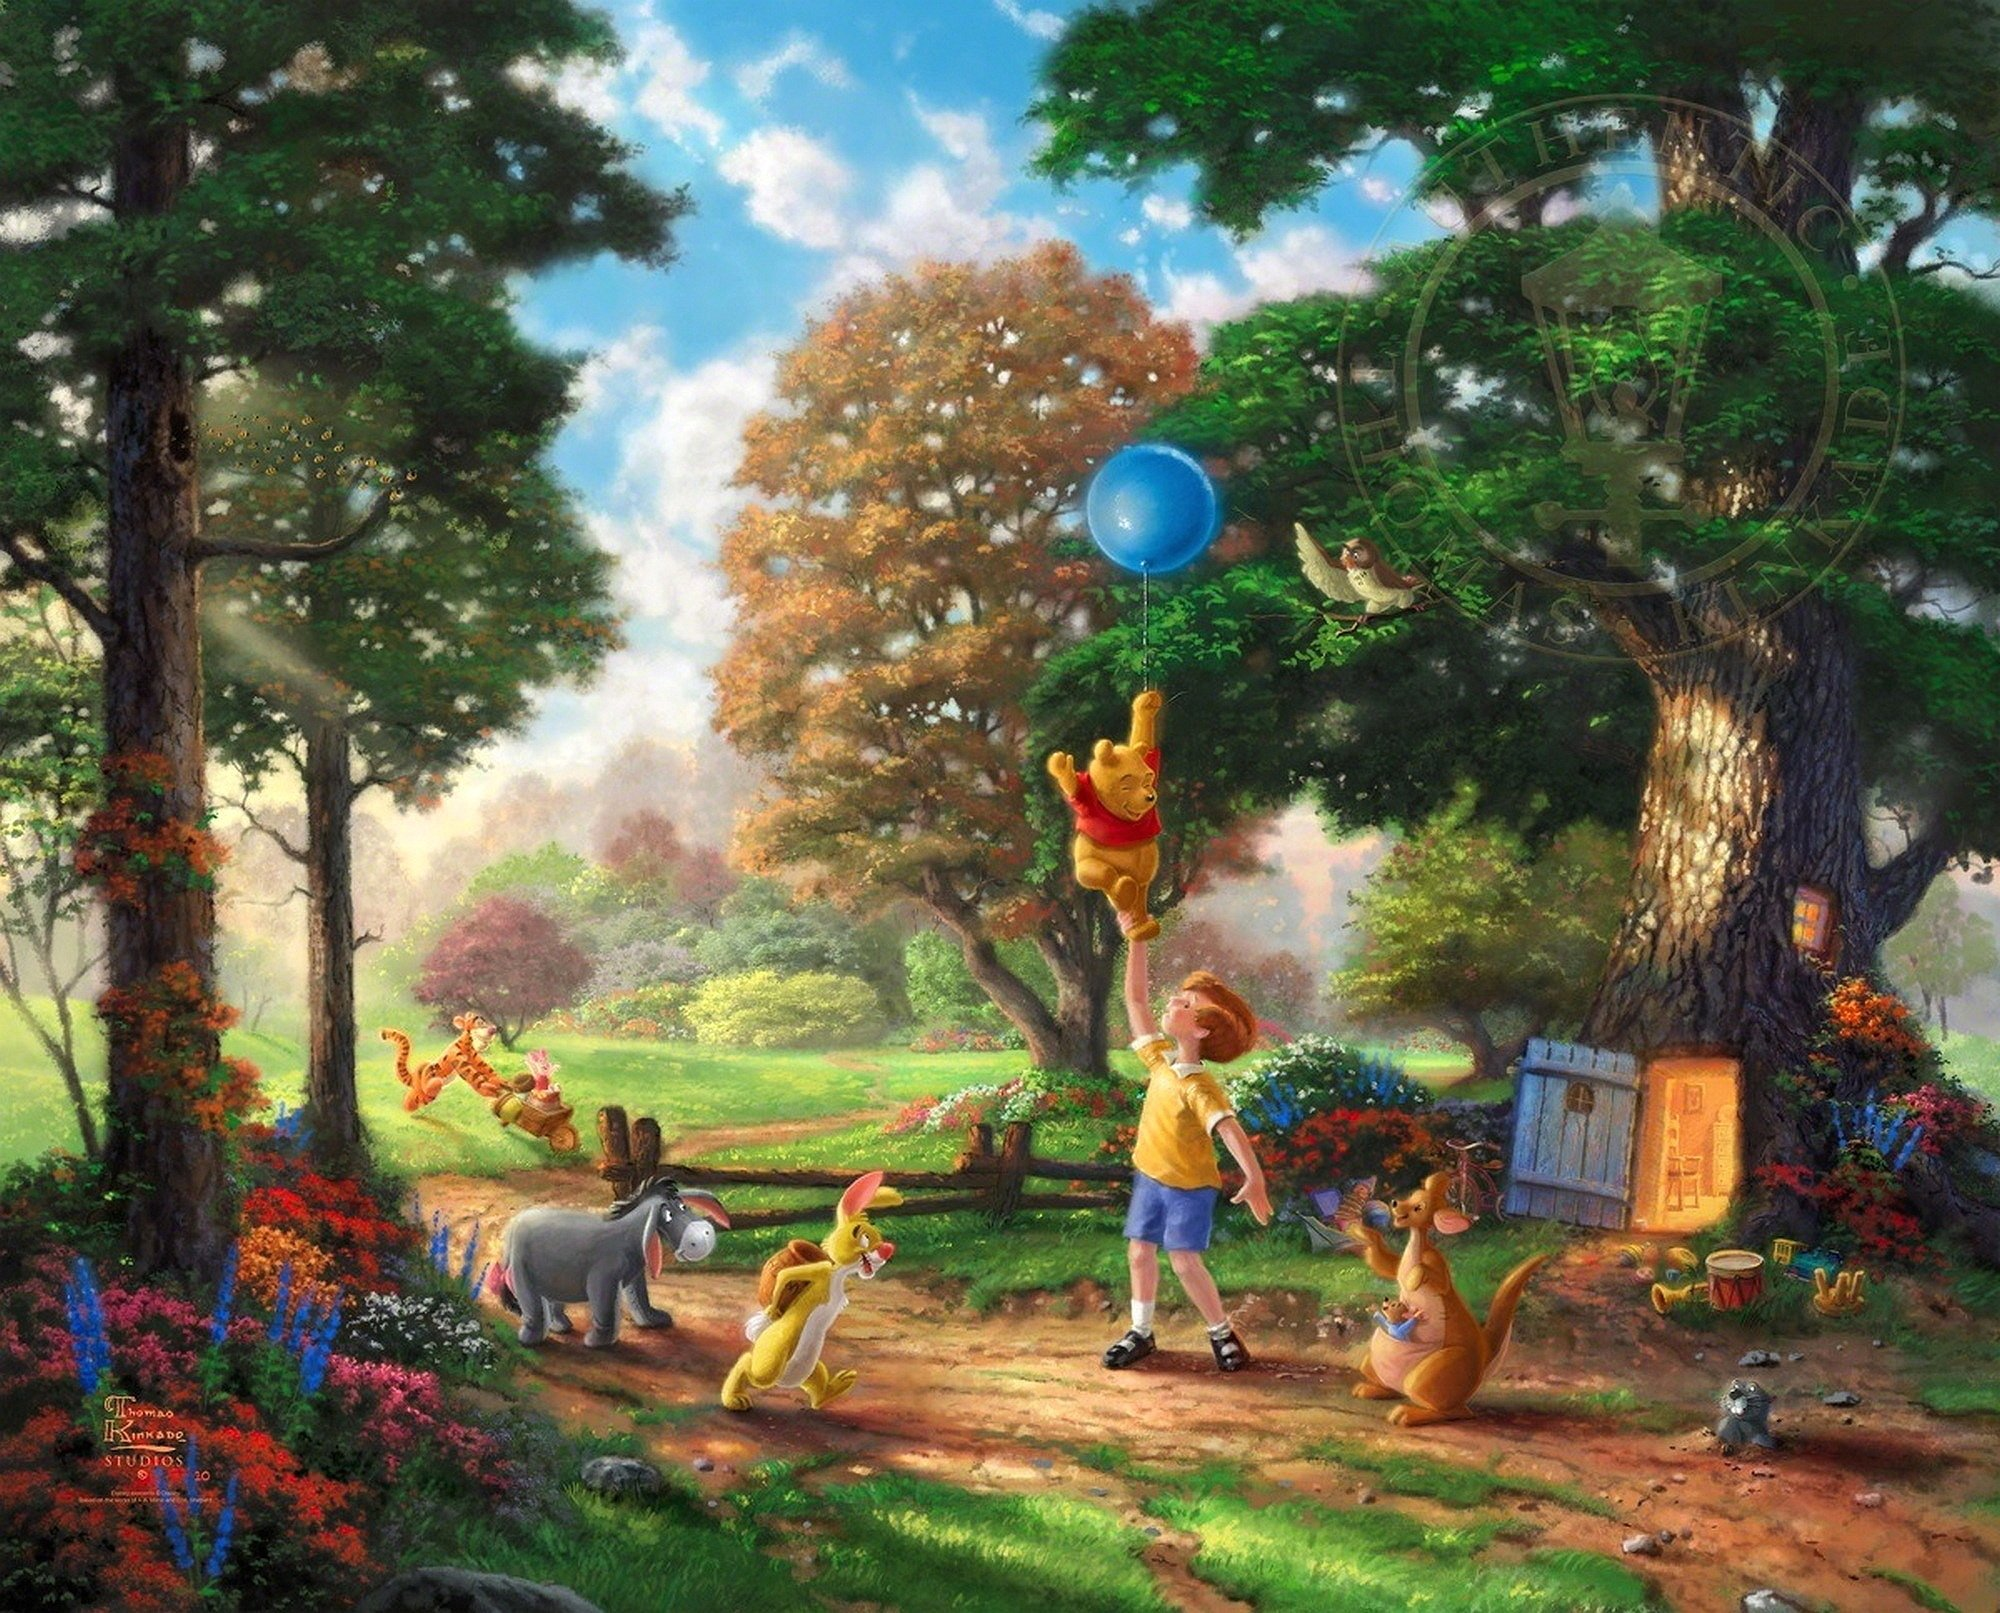 Winnie pooh thomas kinkade family disney fantasy wallpaper 2000x1613 2000x1613